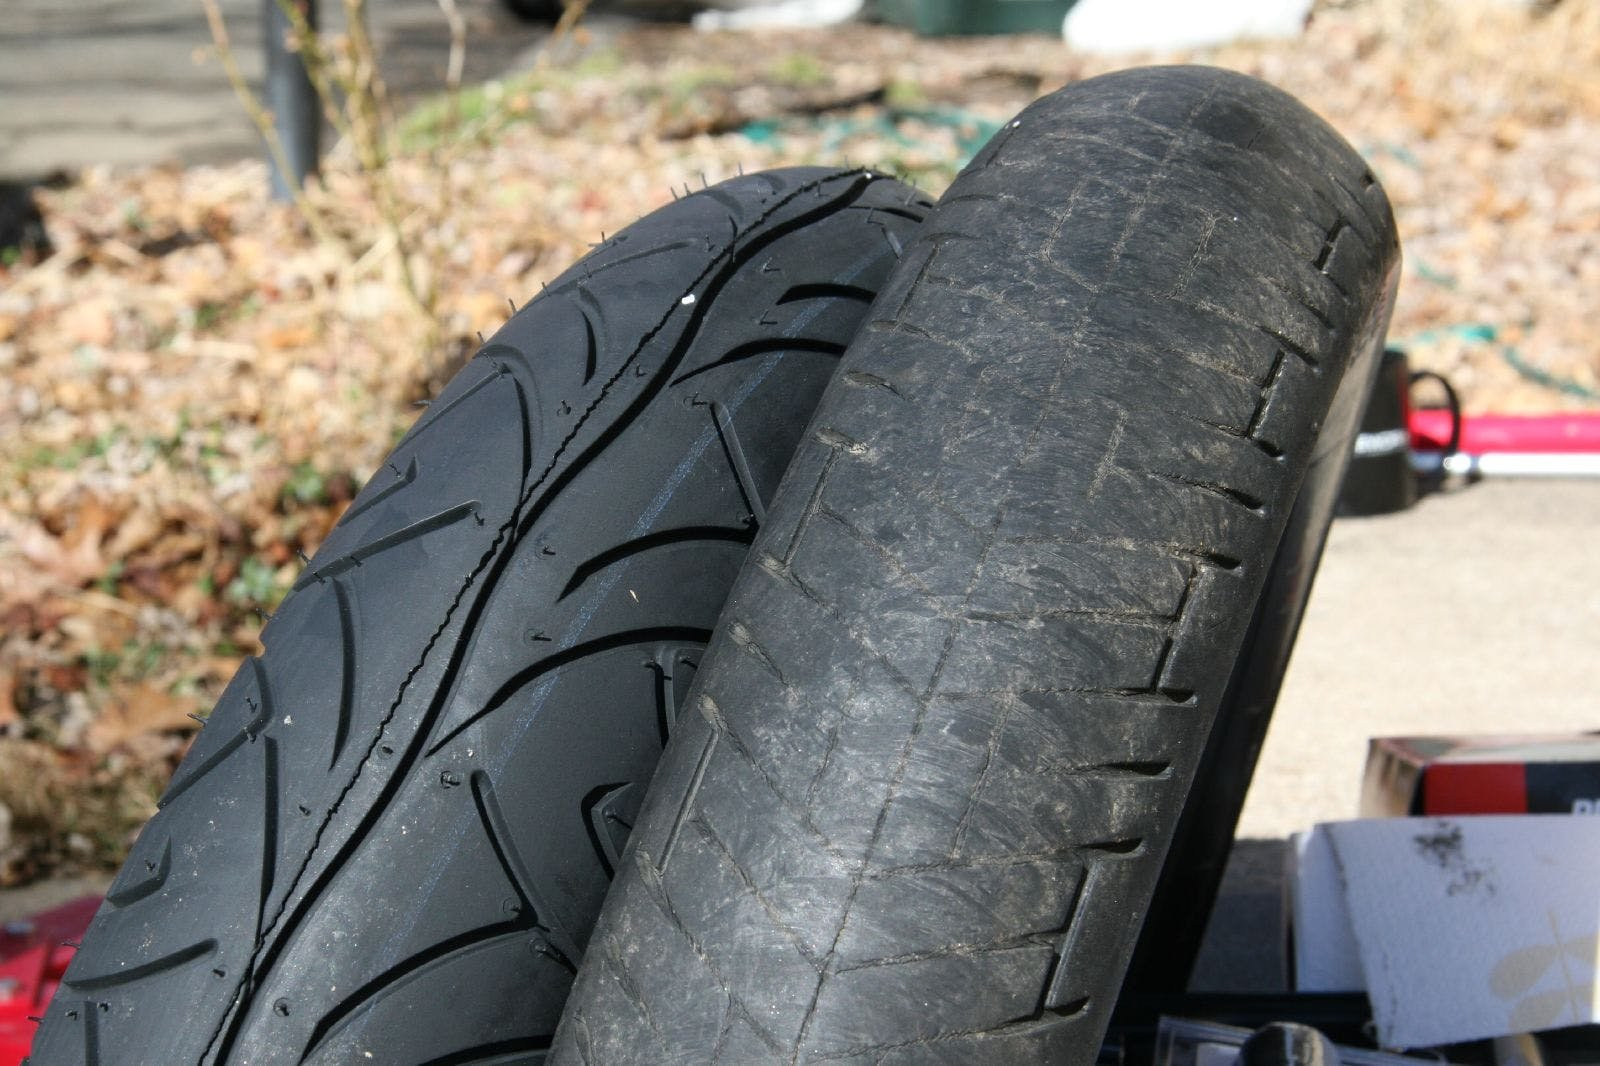 a brand new tyre next to a well worn tyre